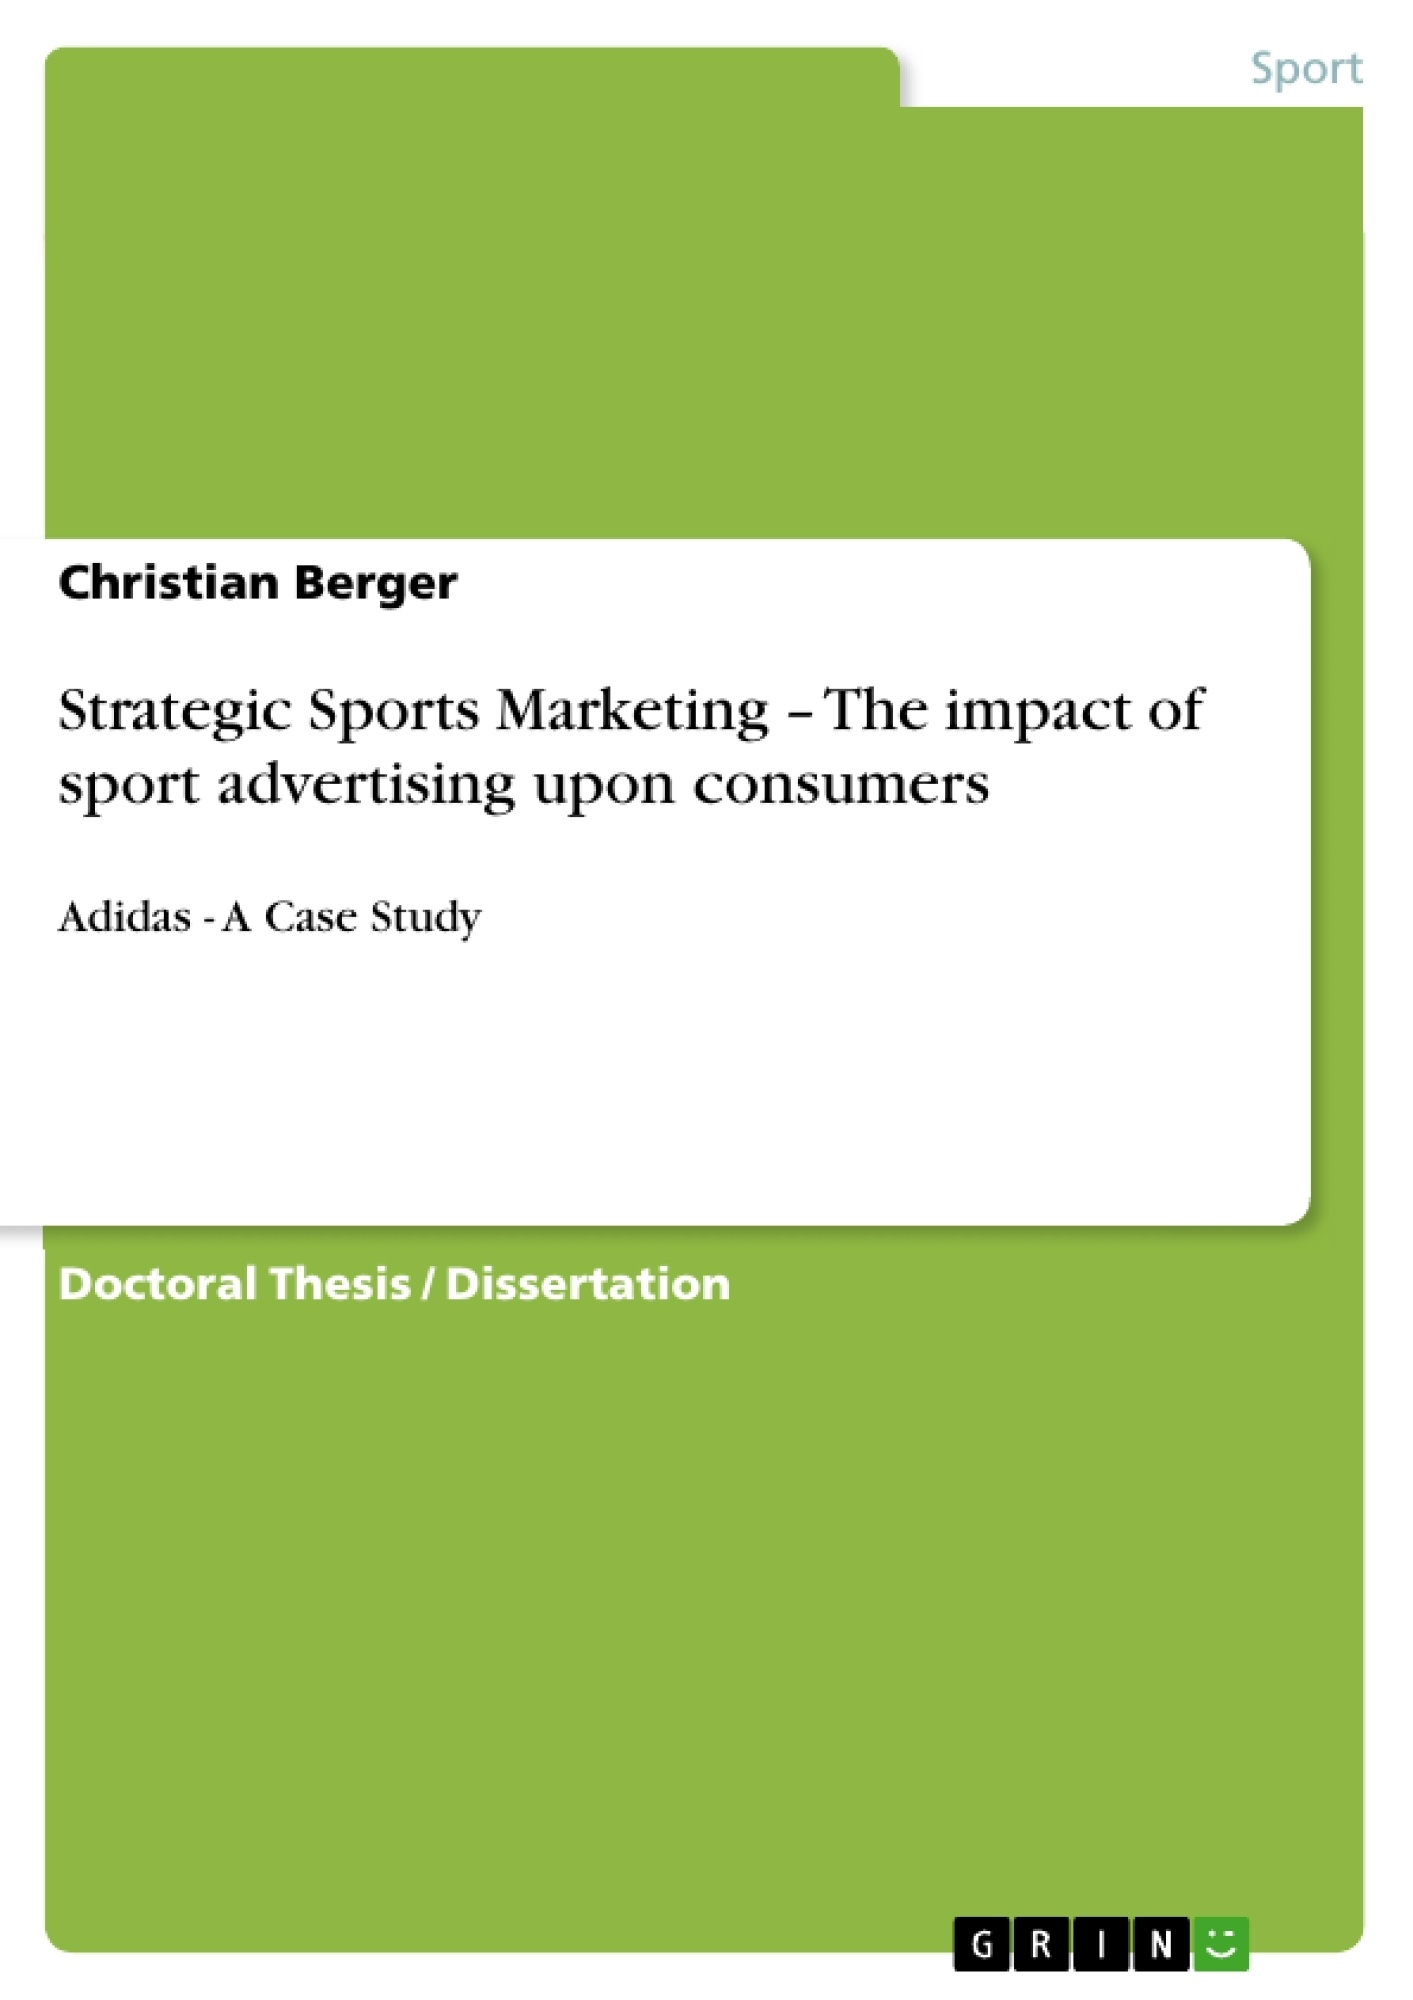 Effect of brand image on consumer purchase behaviour